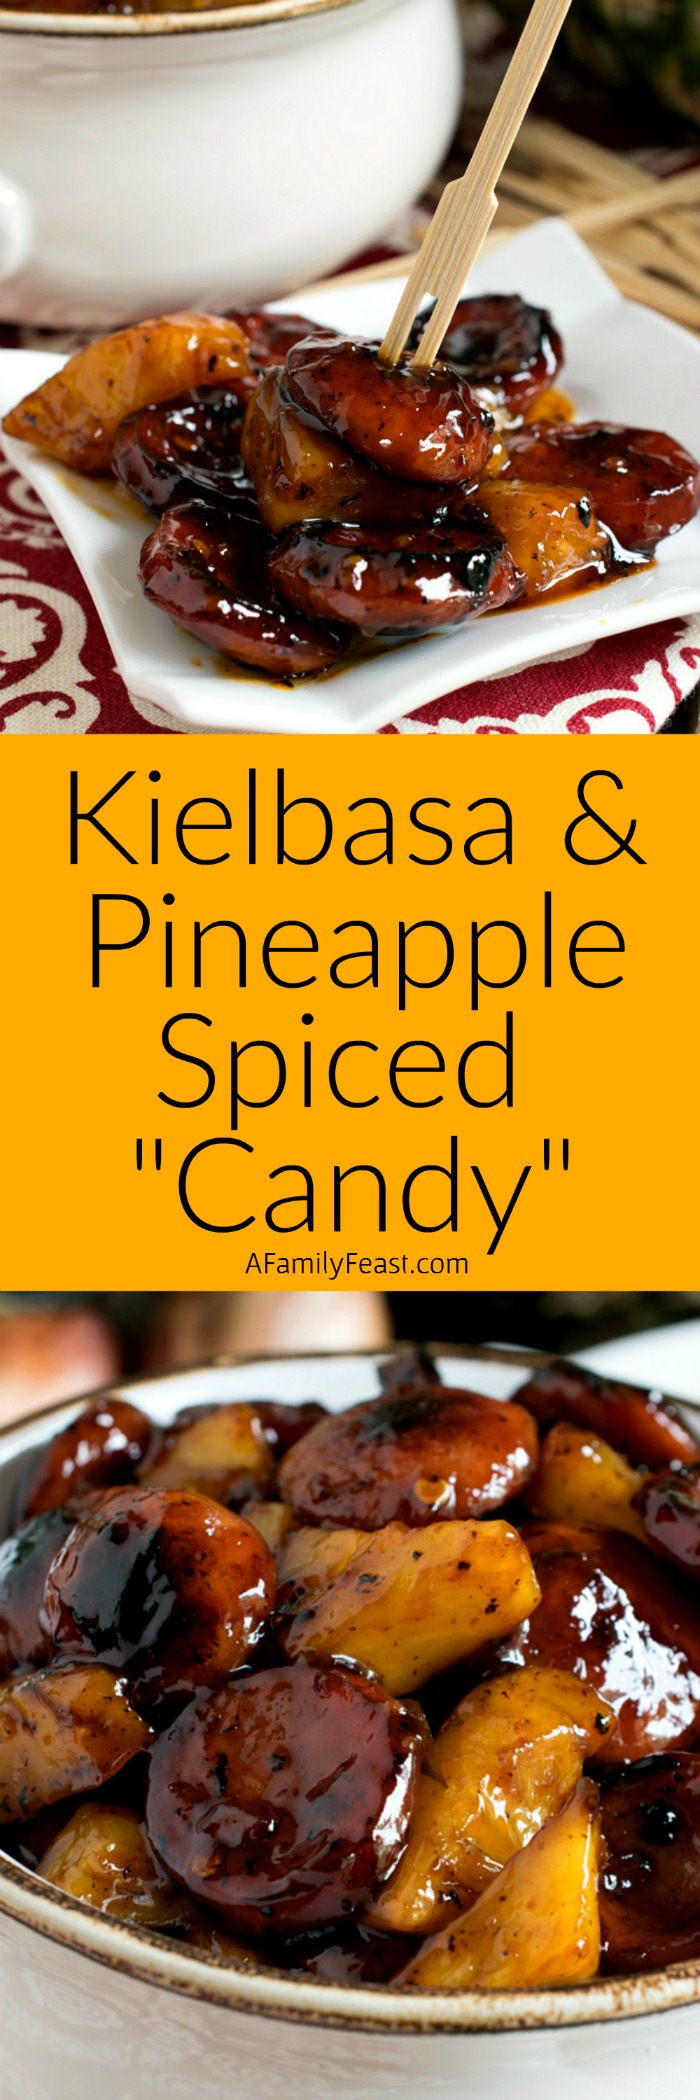 "This sticky-sweet Kielbasa and Pineapple Spiced ""Candy"" is so good, it's sure to become a favorite at your next barbecue!"